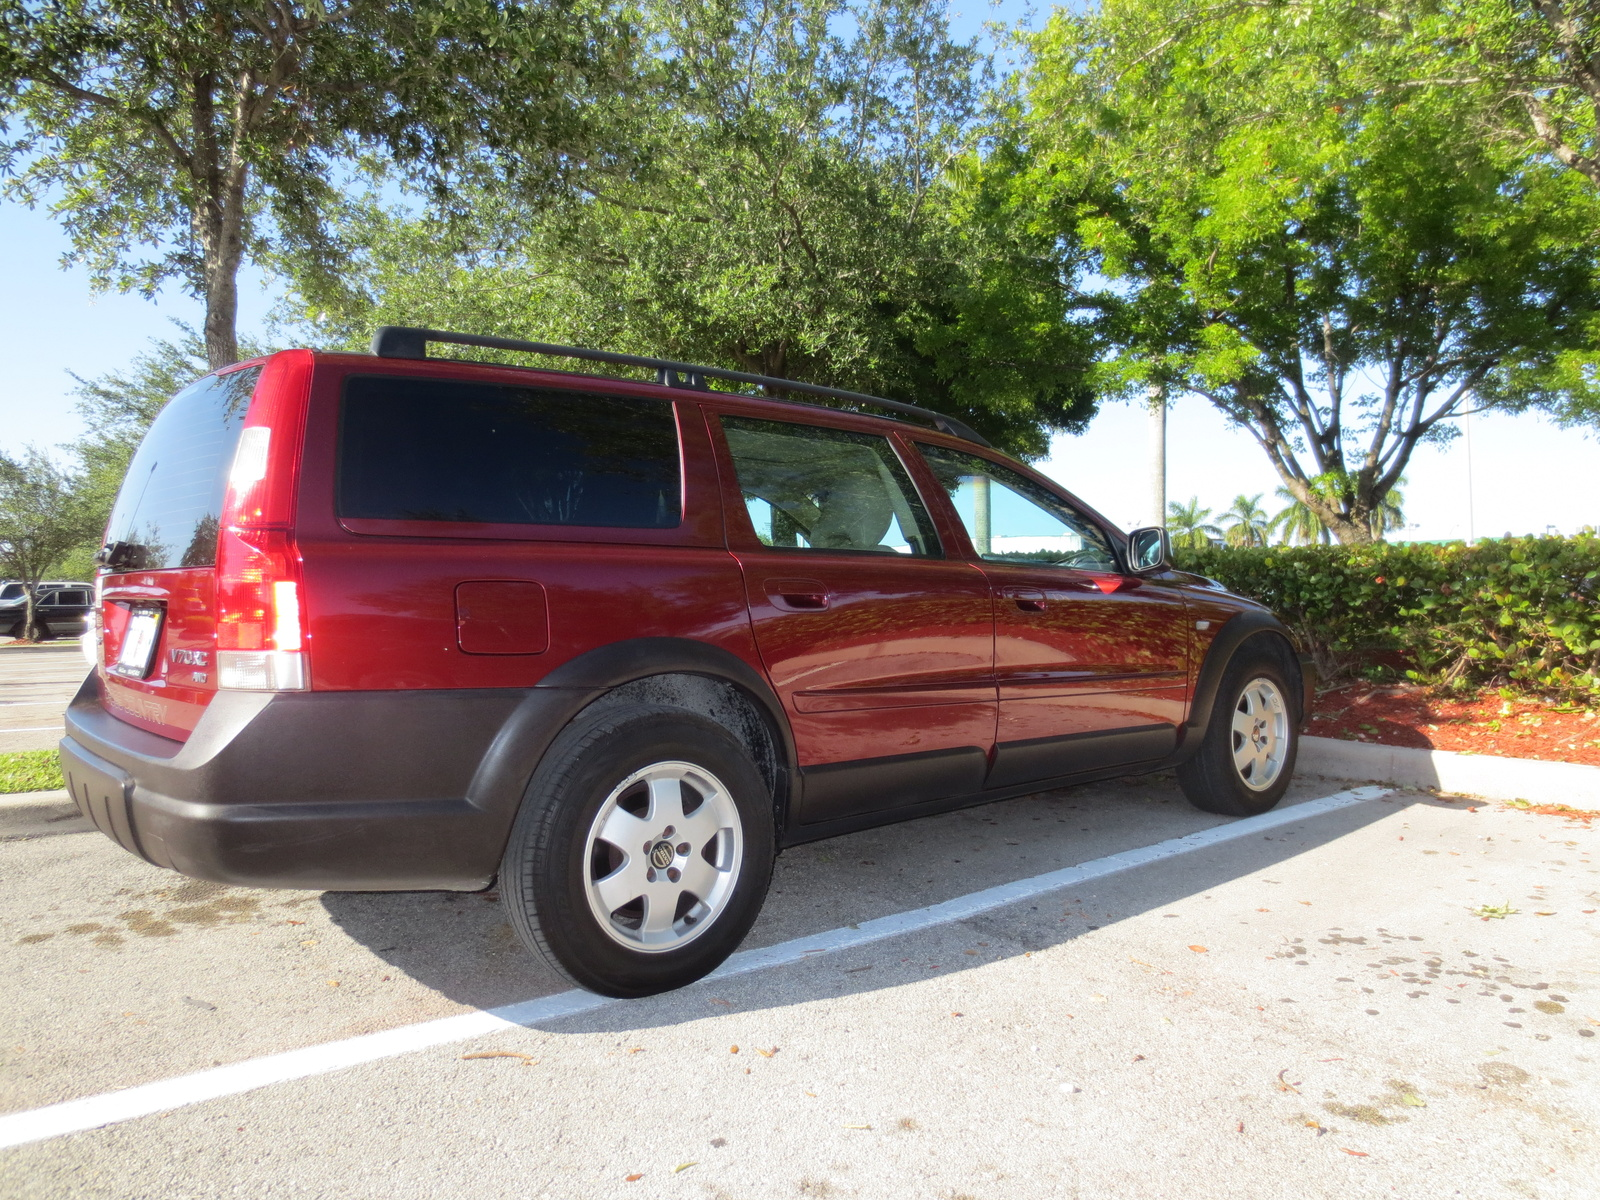 Picture of 2003 volvo xc70 exterior gallery_worthy